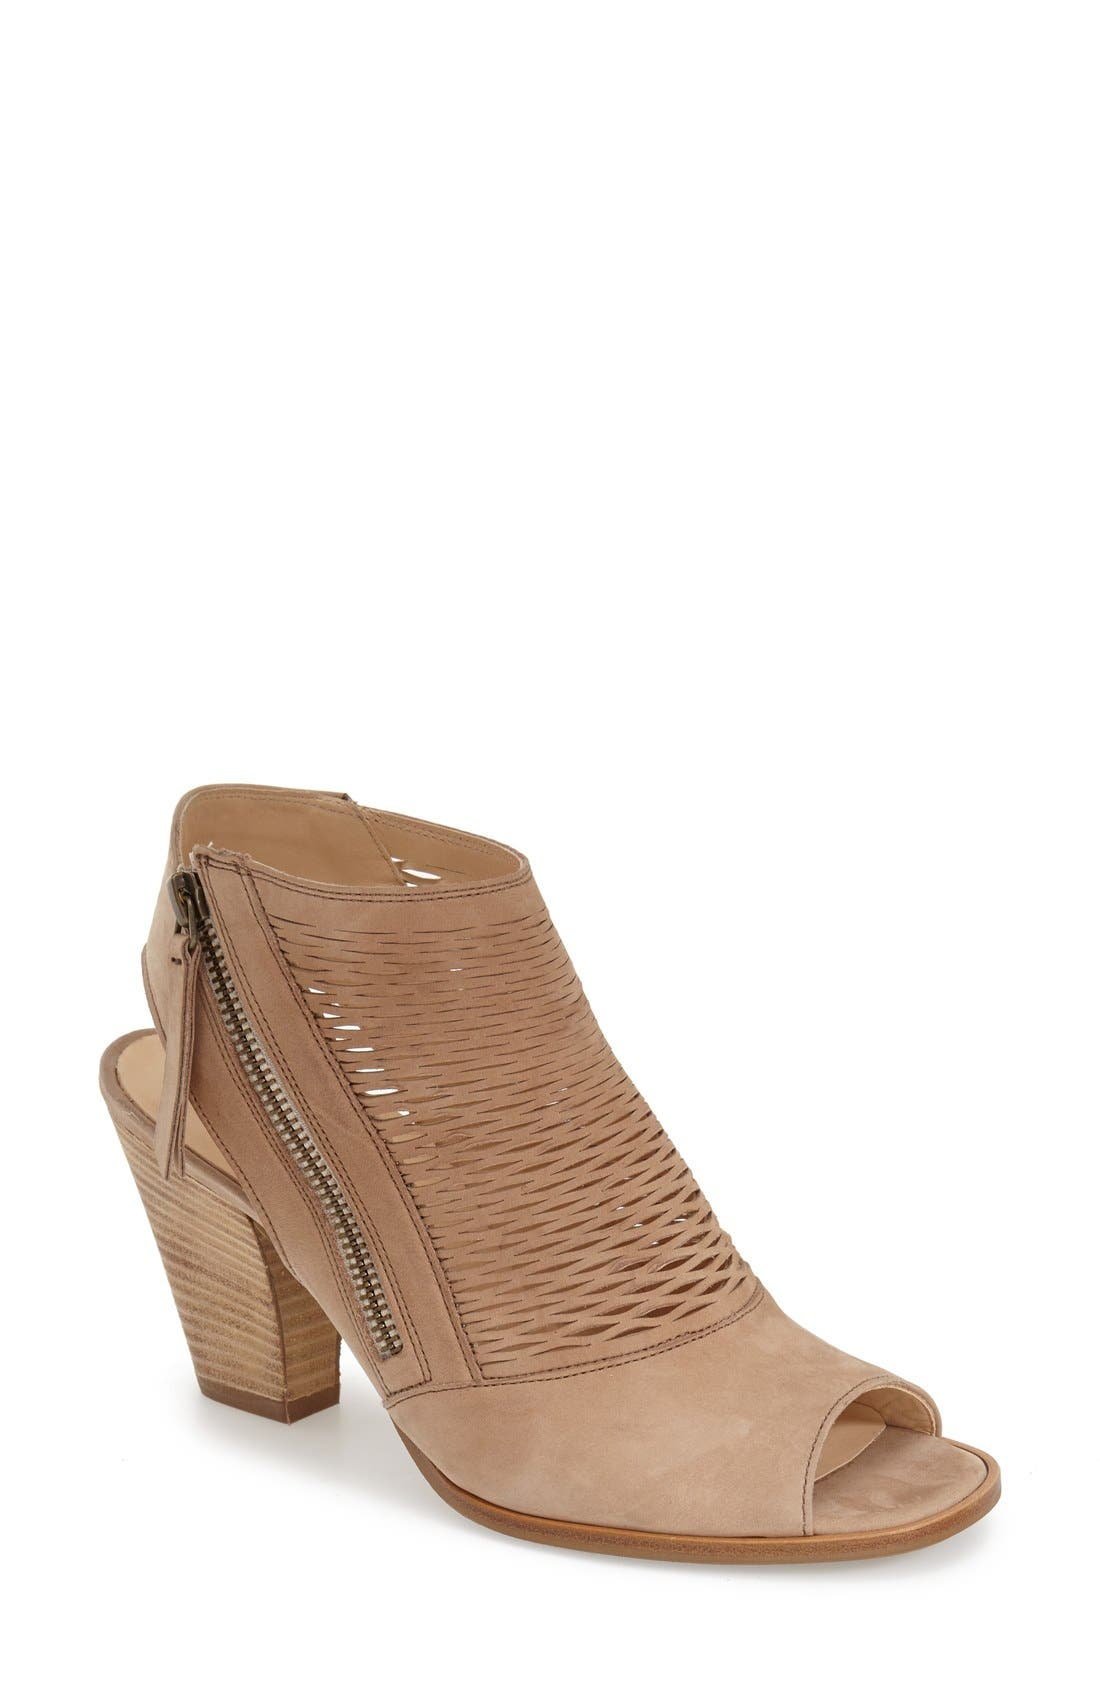 'Willow' Peep Toe Sandal,                         Main,                         color, 291